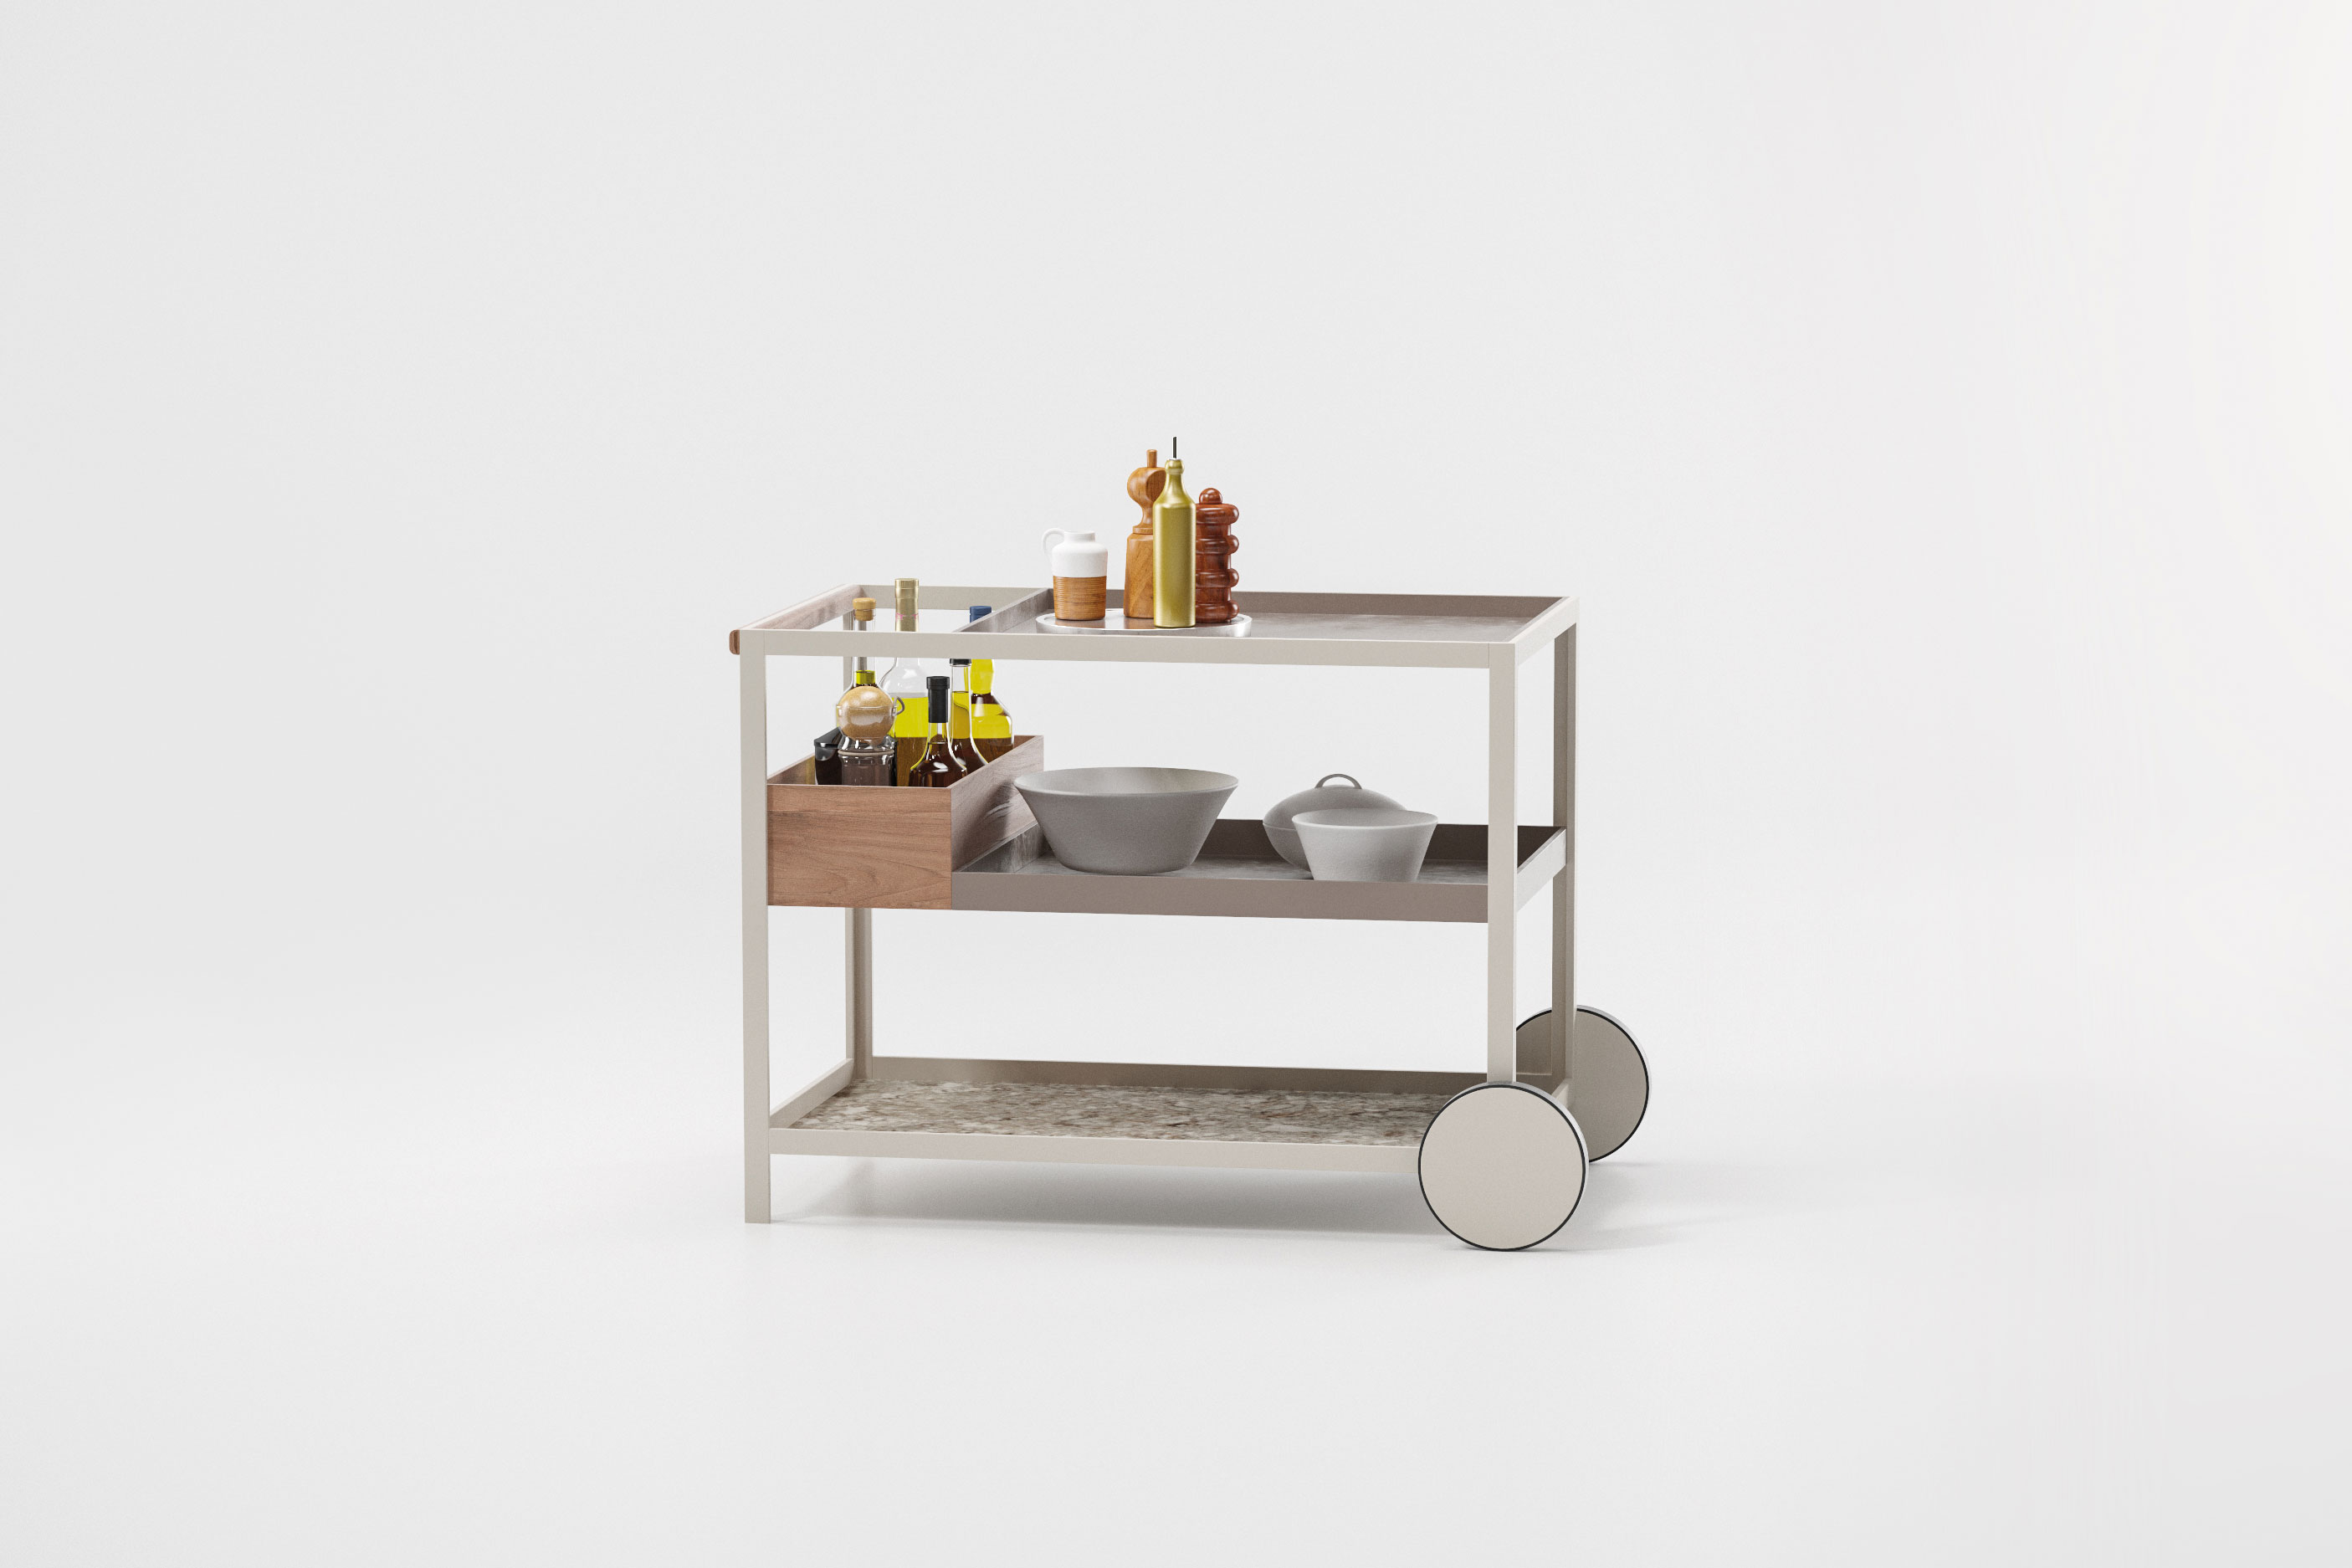 Kettal´s outdoor kitchen collection